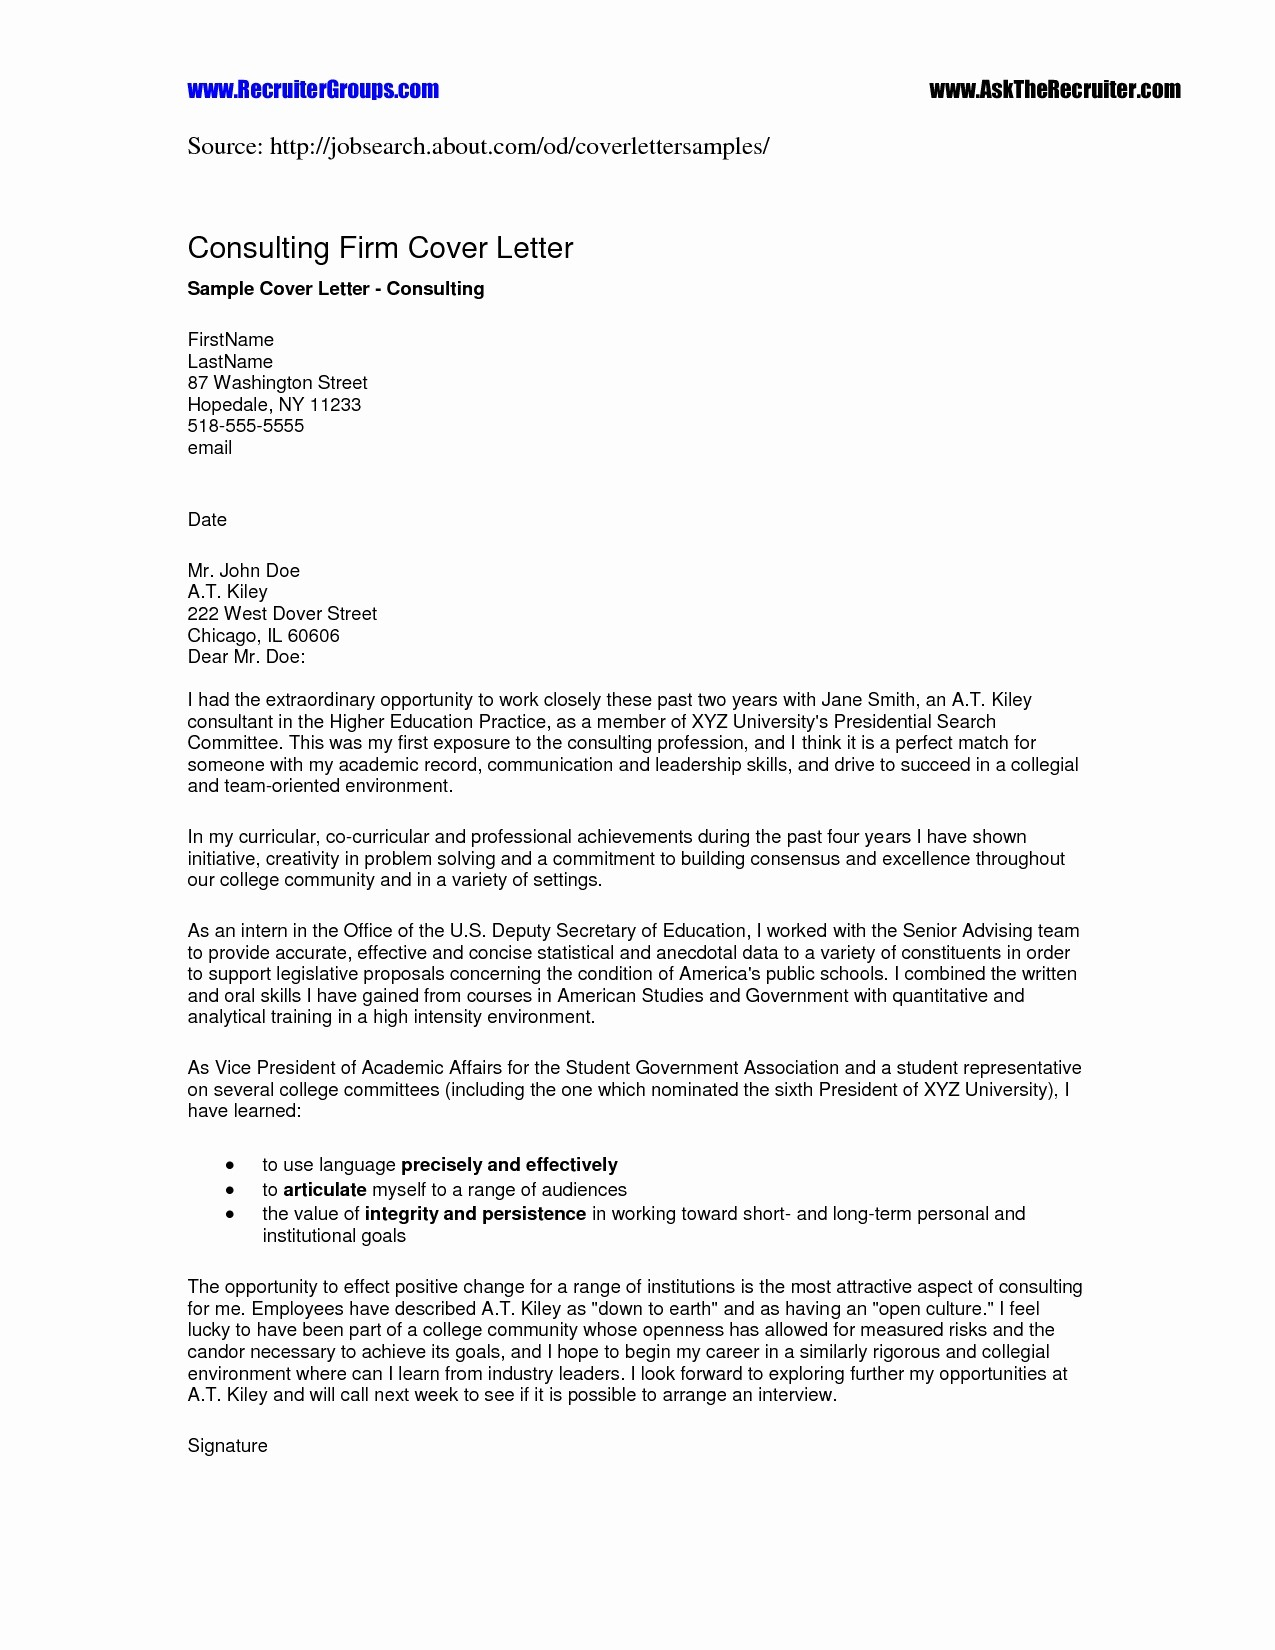 Professional Reference Letter Template Free - Sample Cover Letter for Good Conduct Certificate Fresh Reference